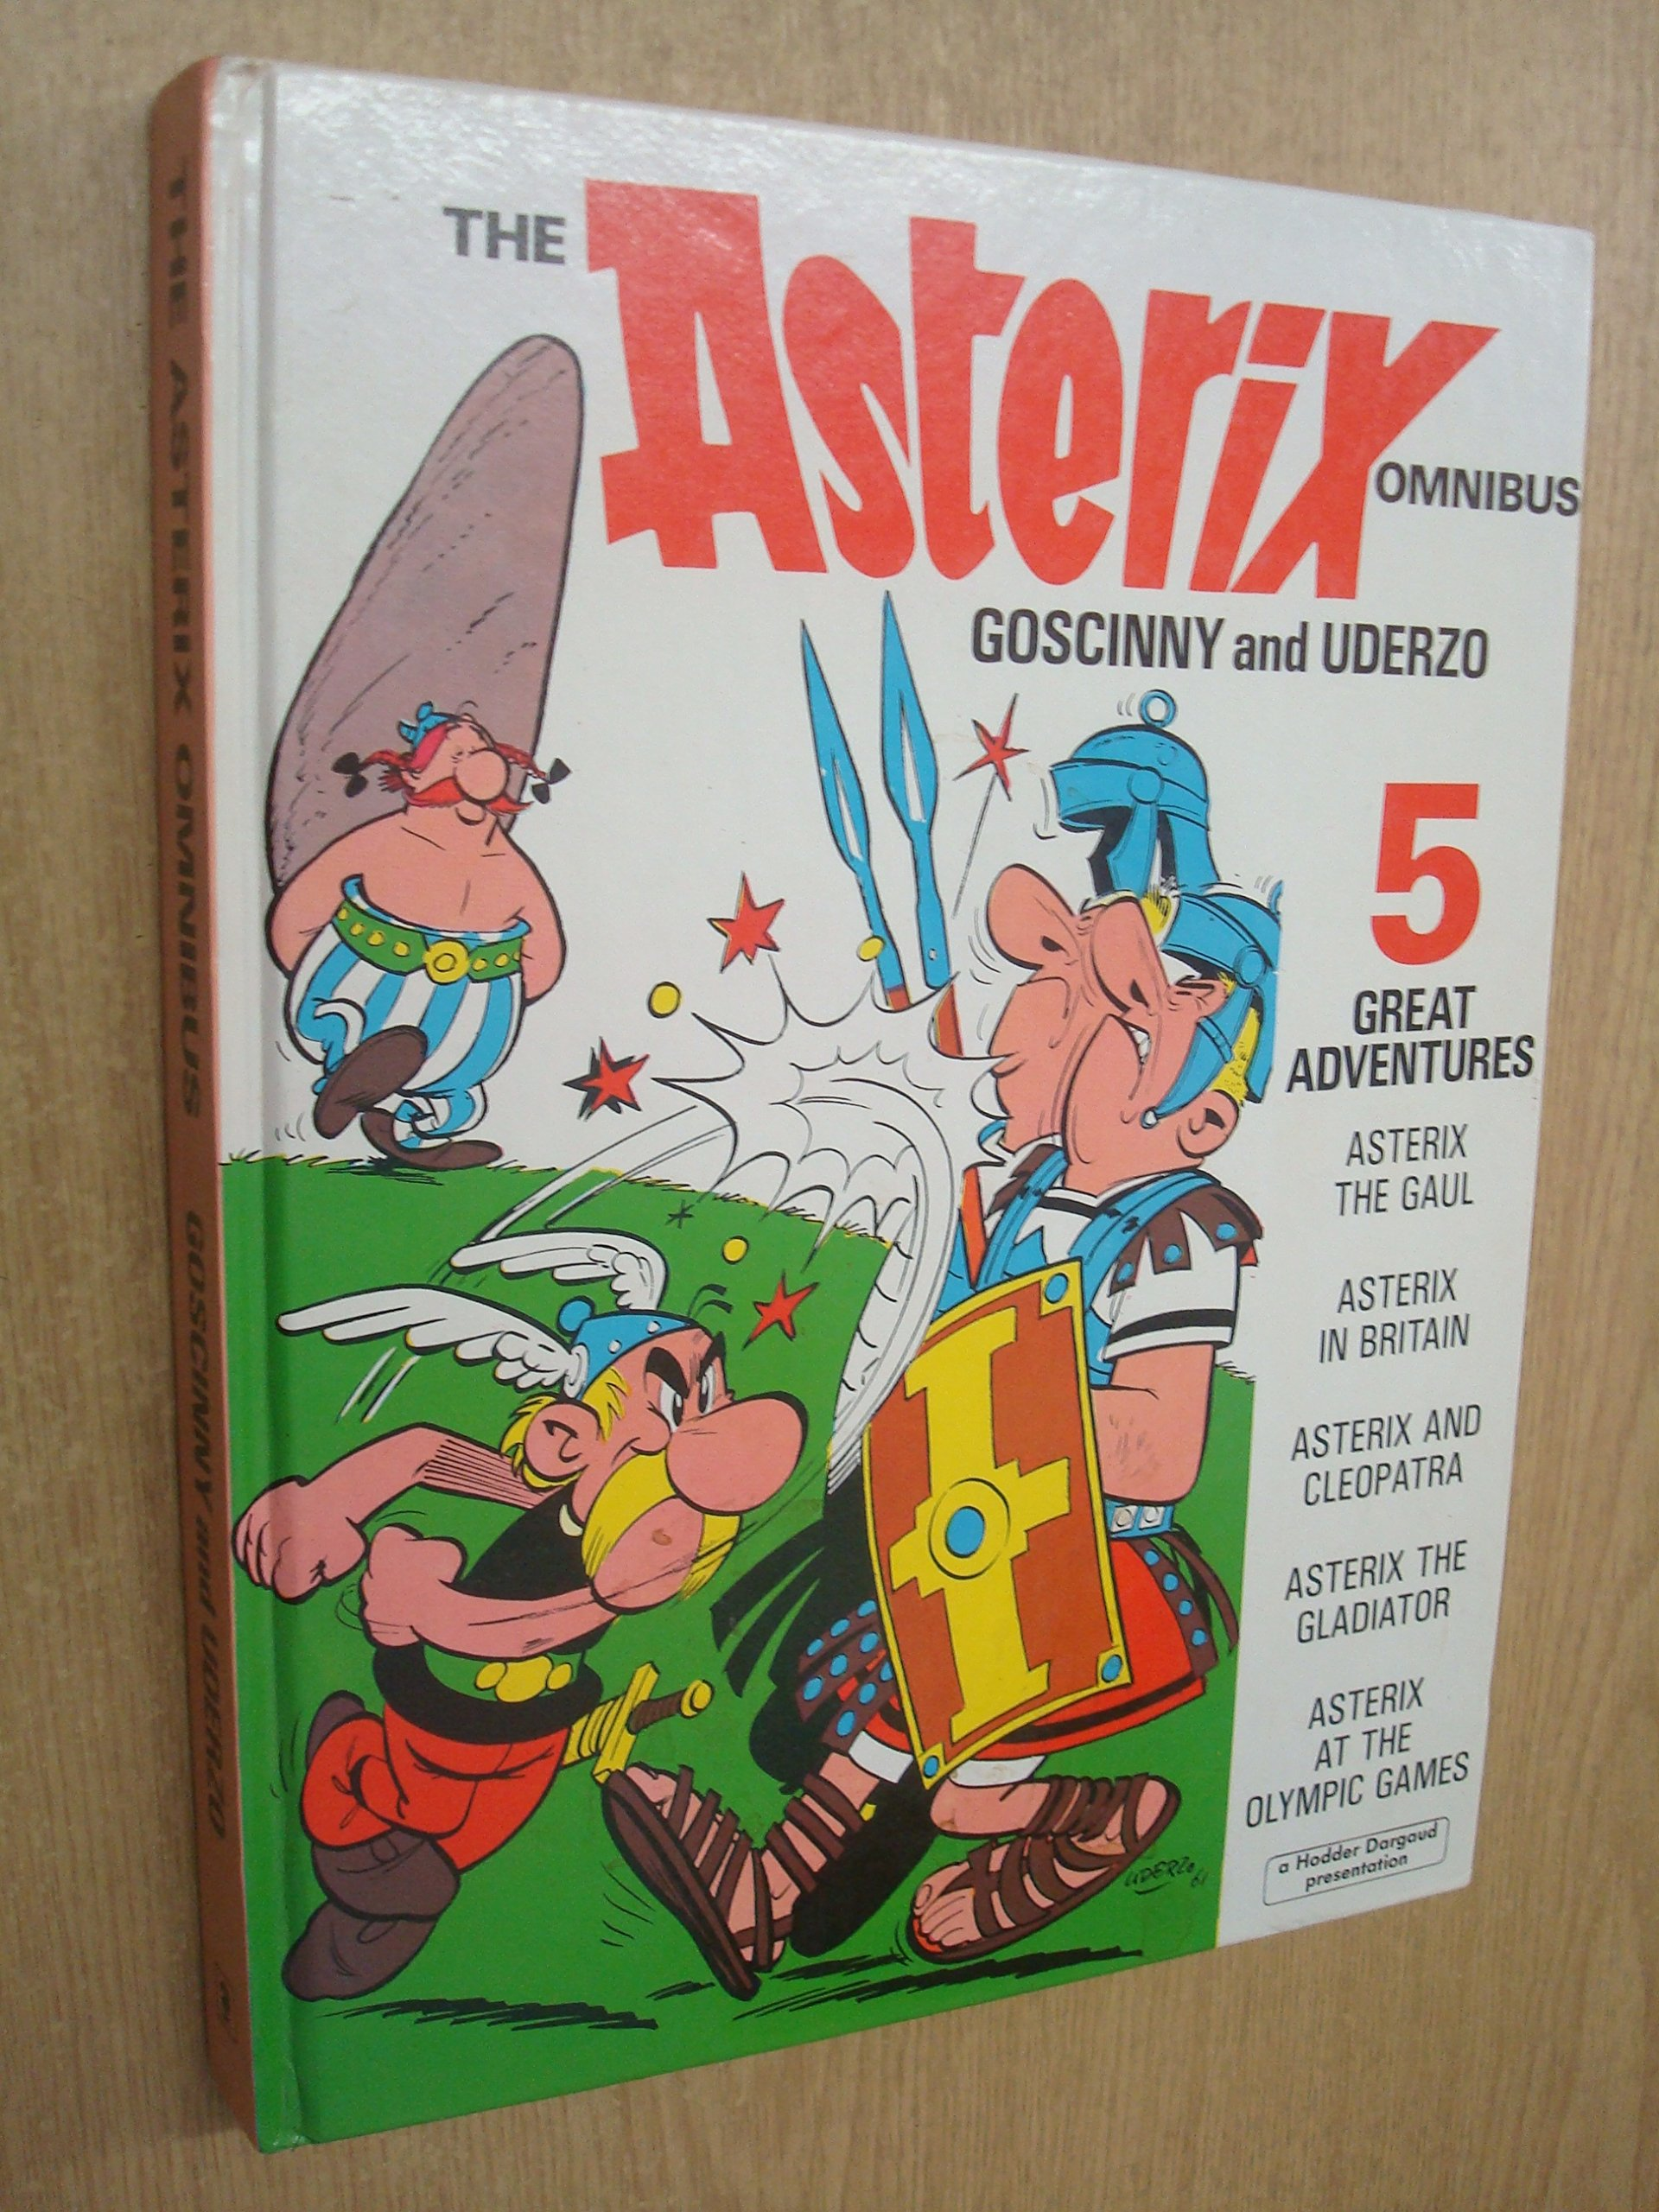 All the asterix you can eat